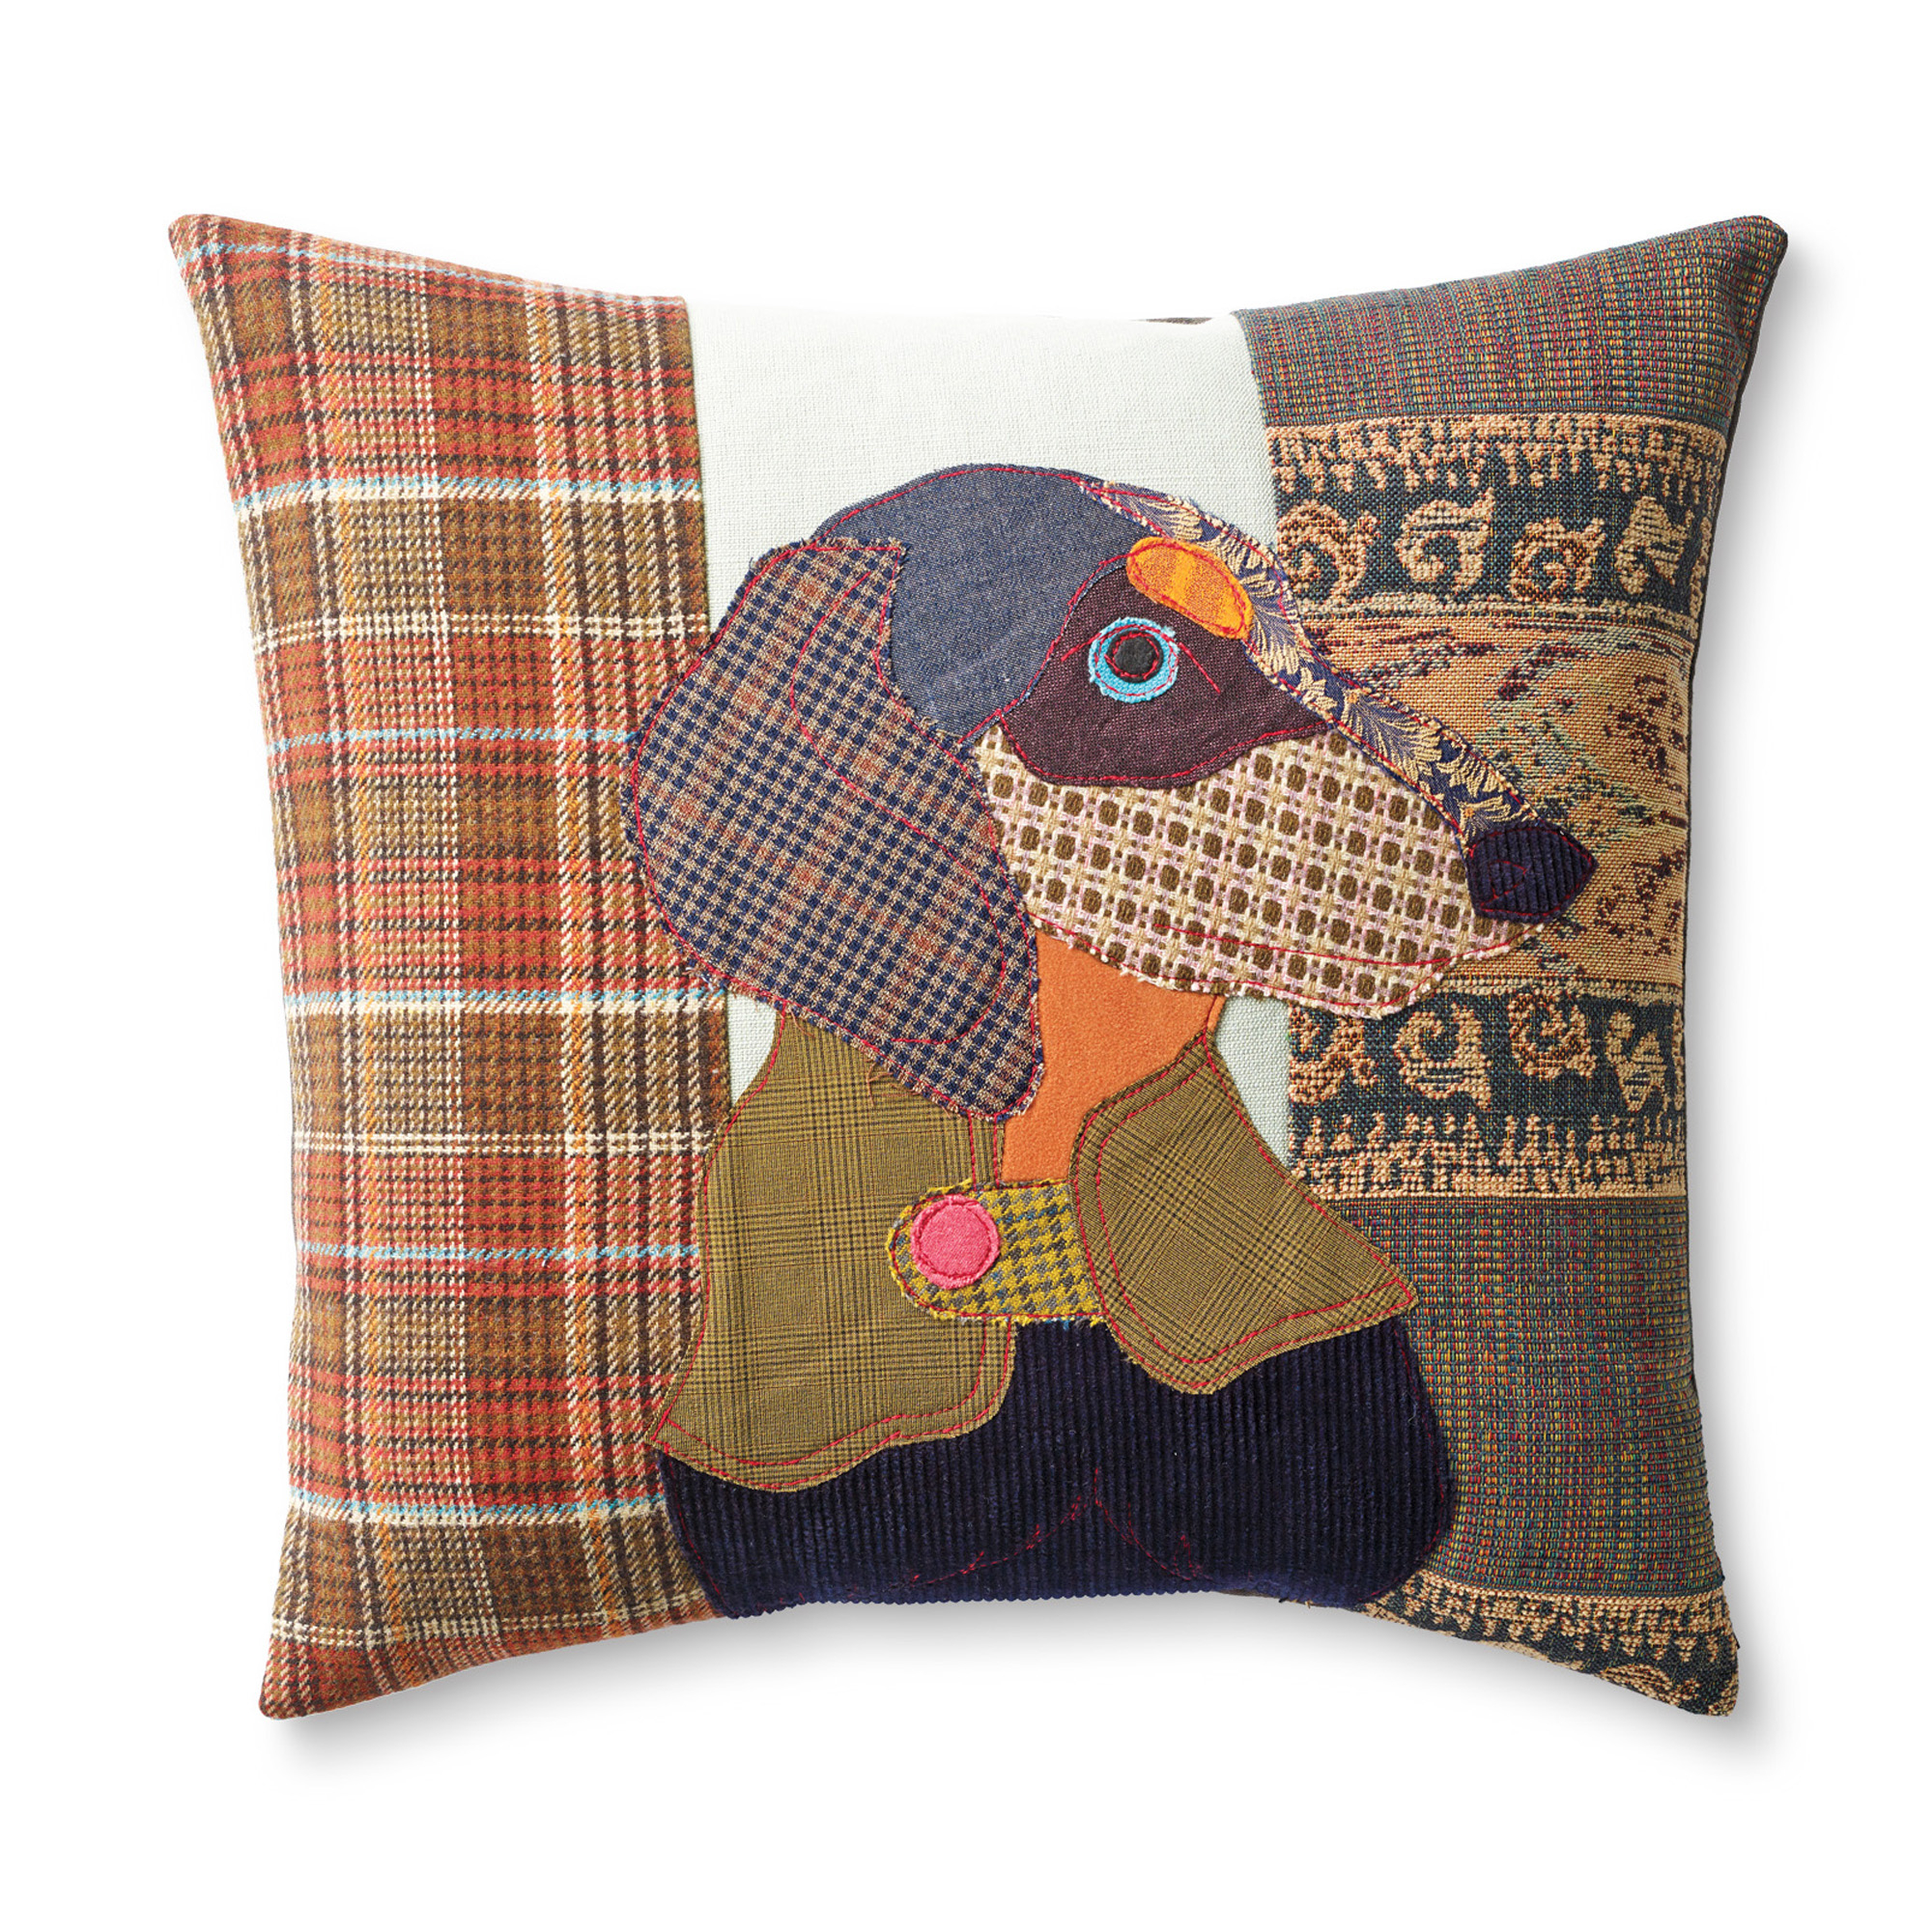 Franz The Dachshund Dog Day Afternoon Pillow